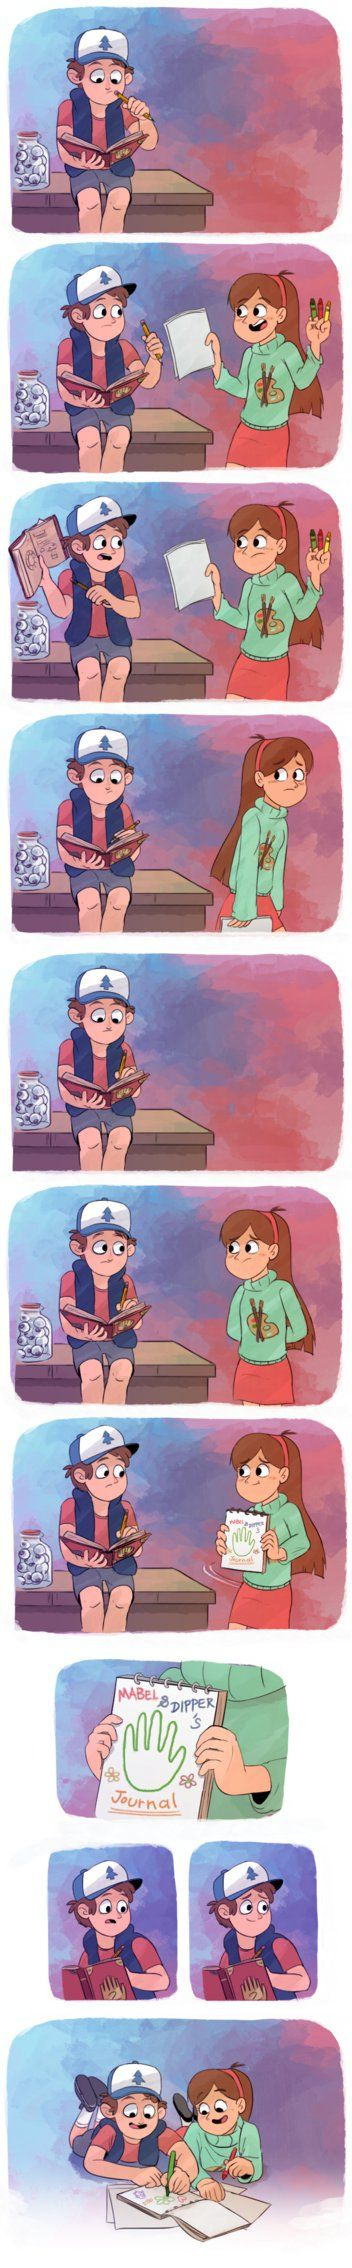 Journal by markmak on DeviantArt